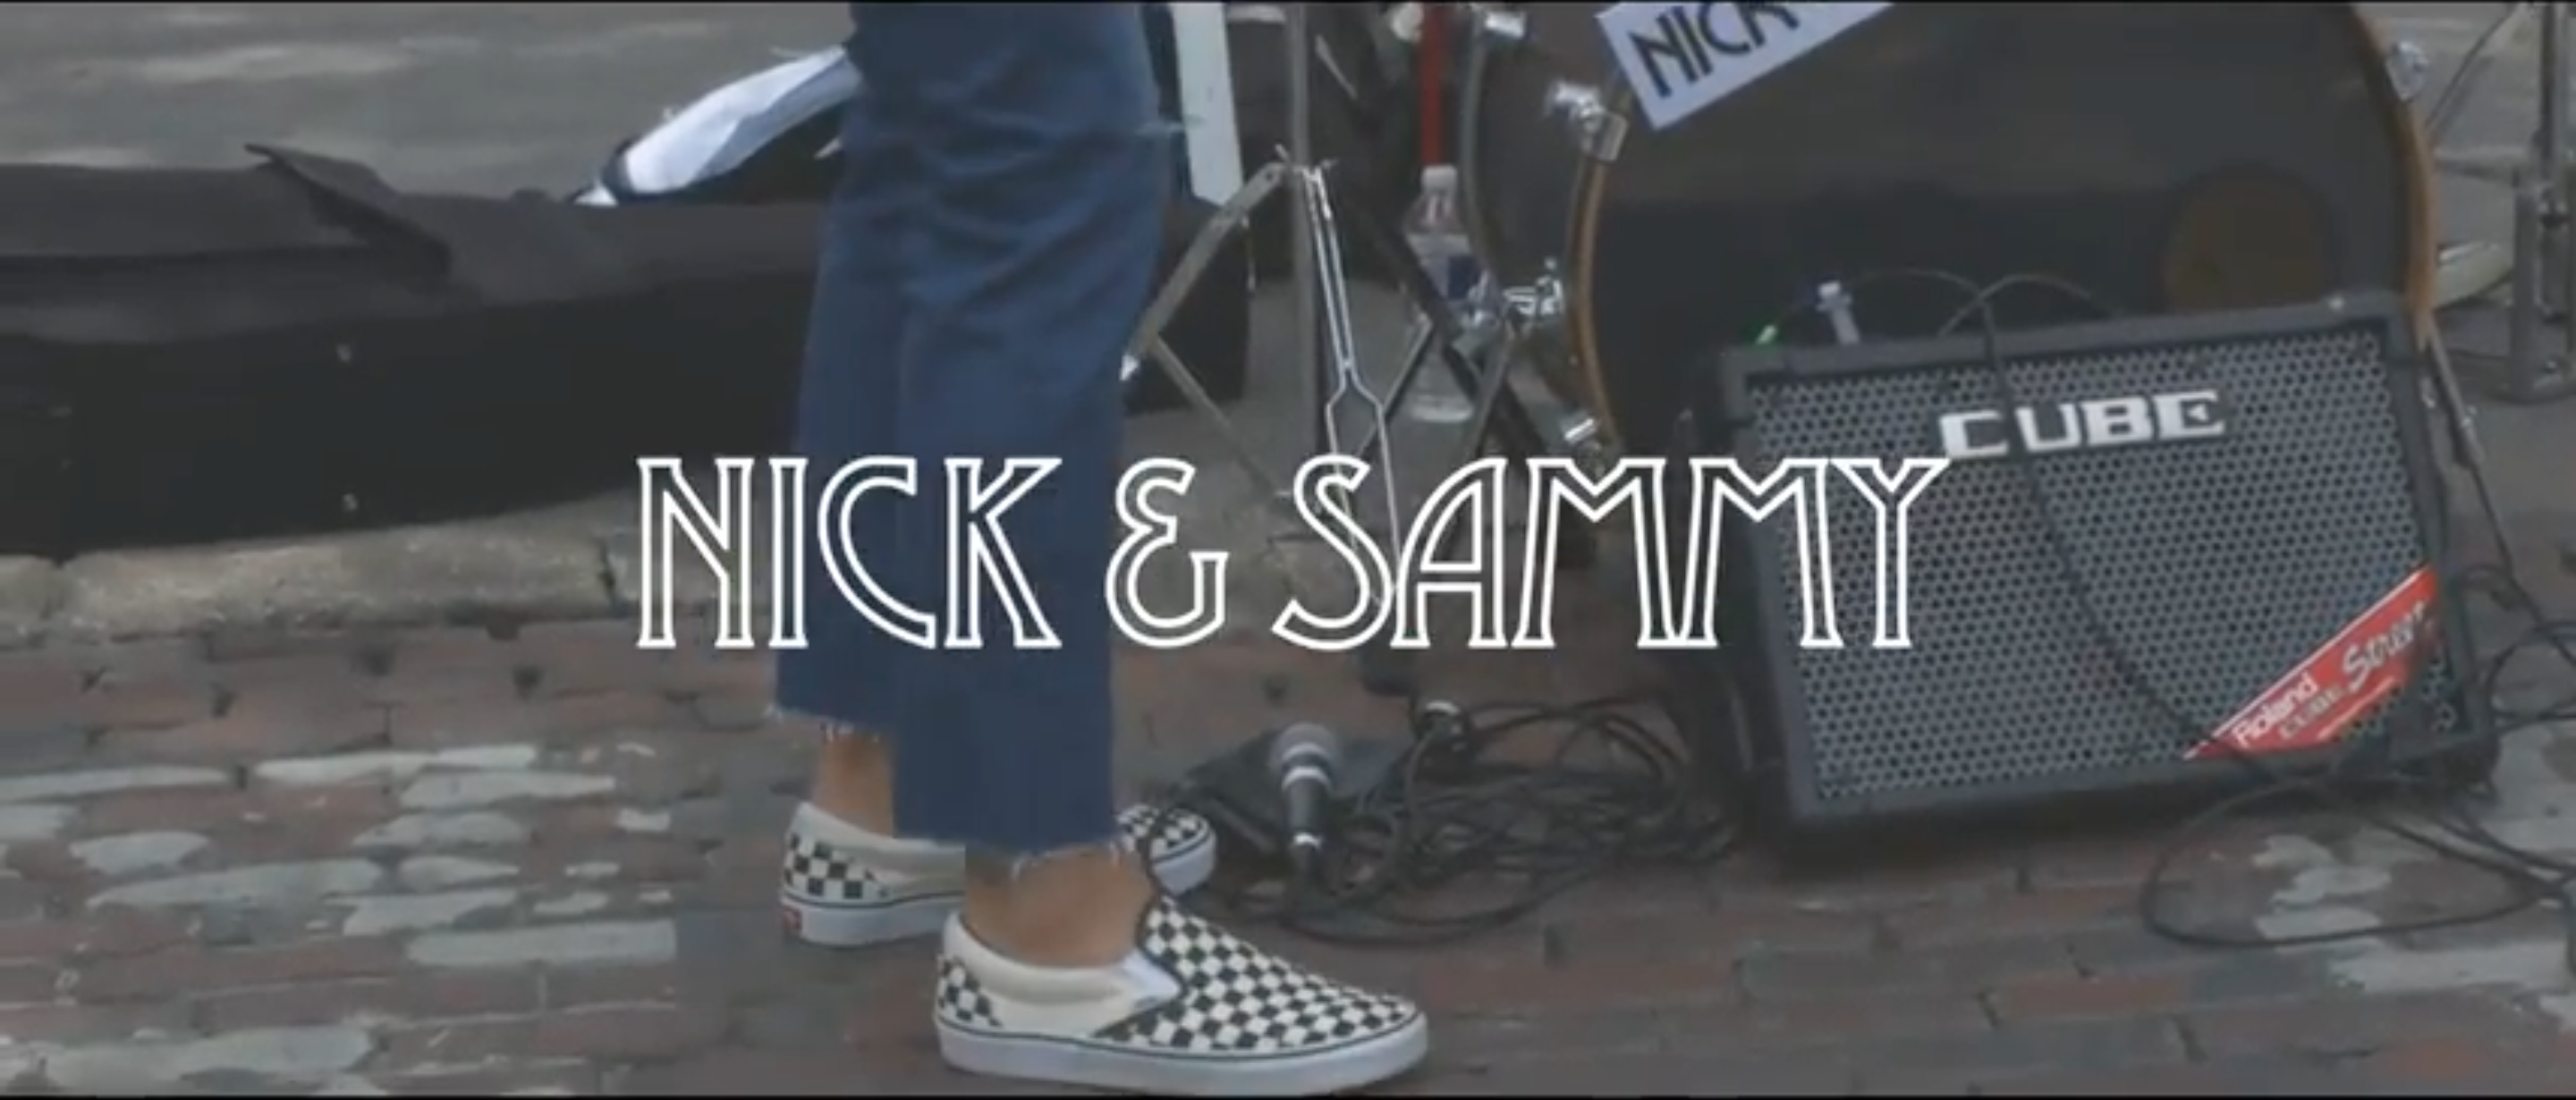 nick and sammy video, busking on sixth street, austin texas, sxsw, music